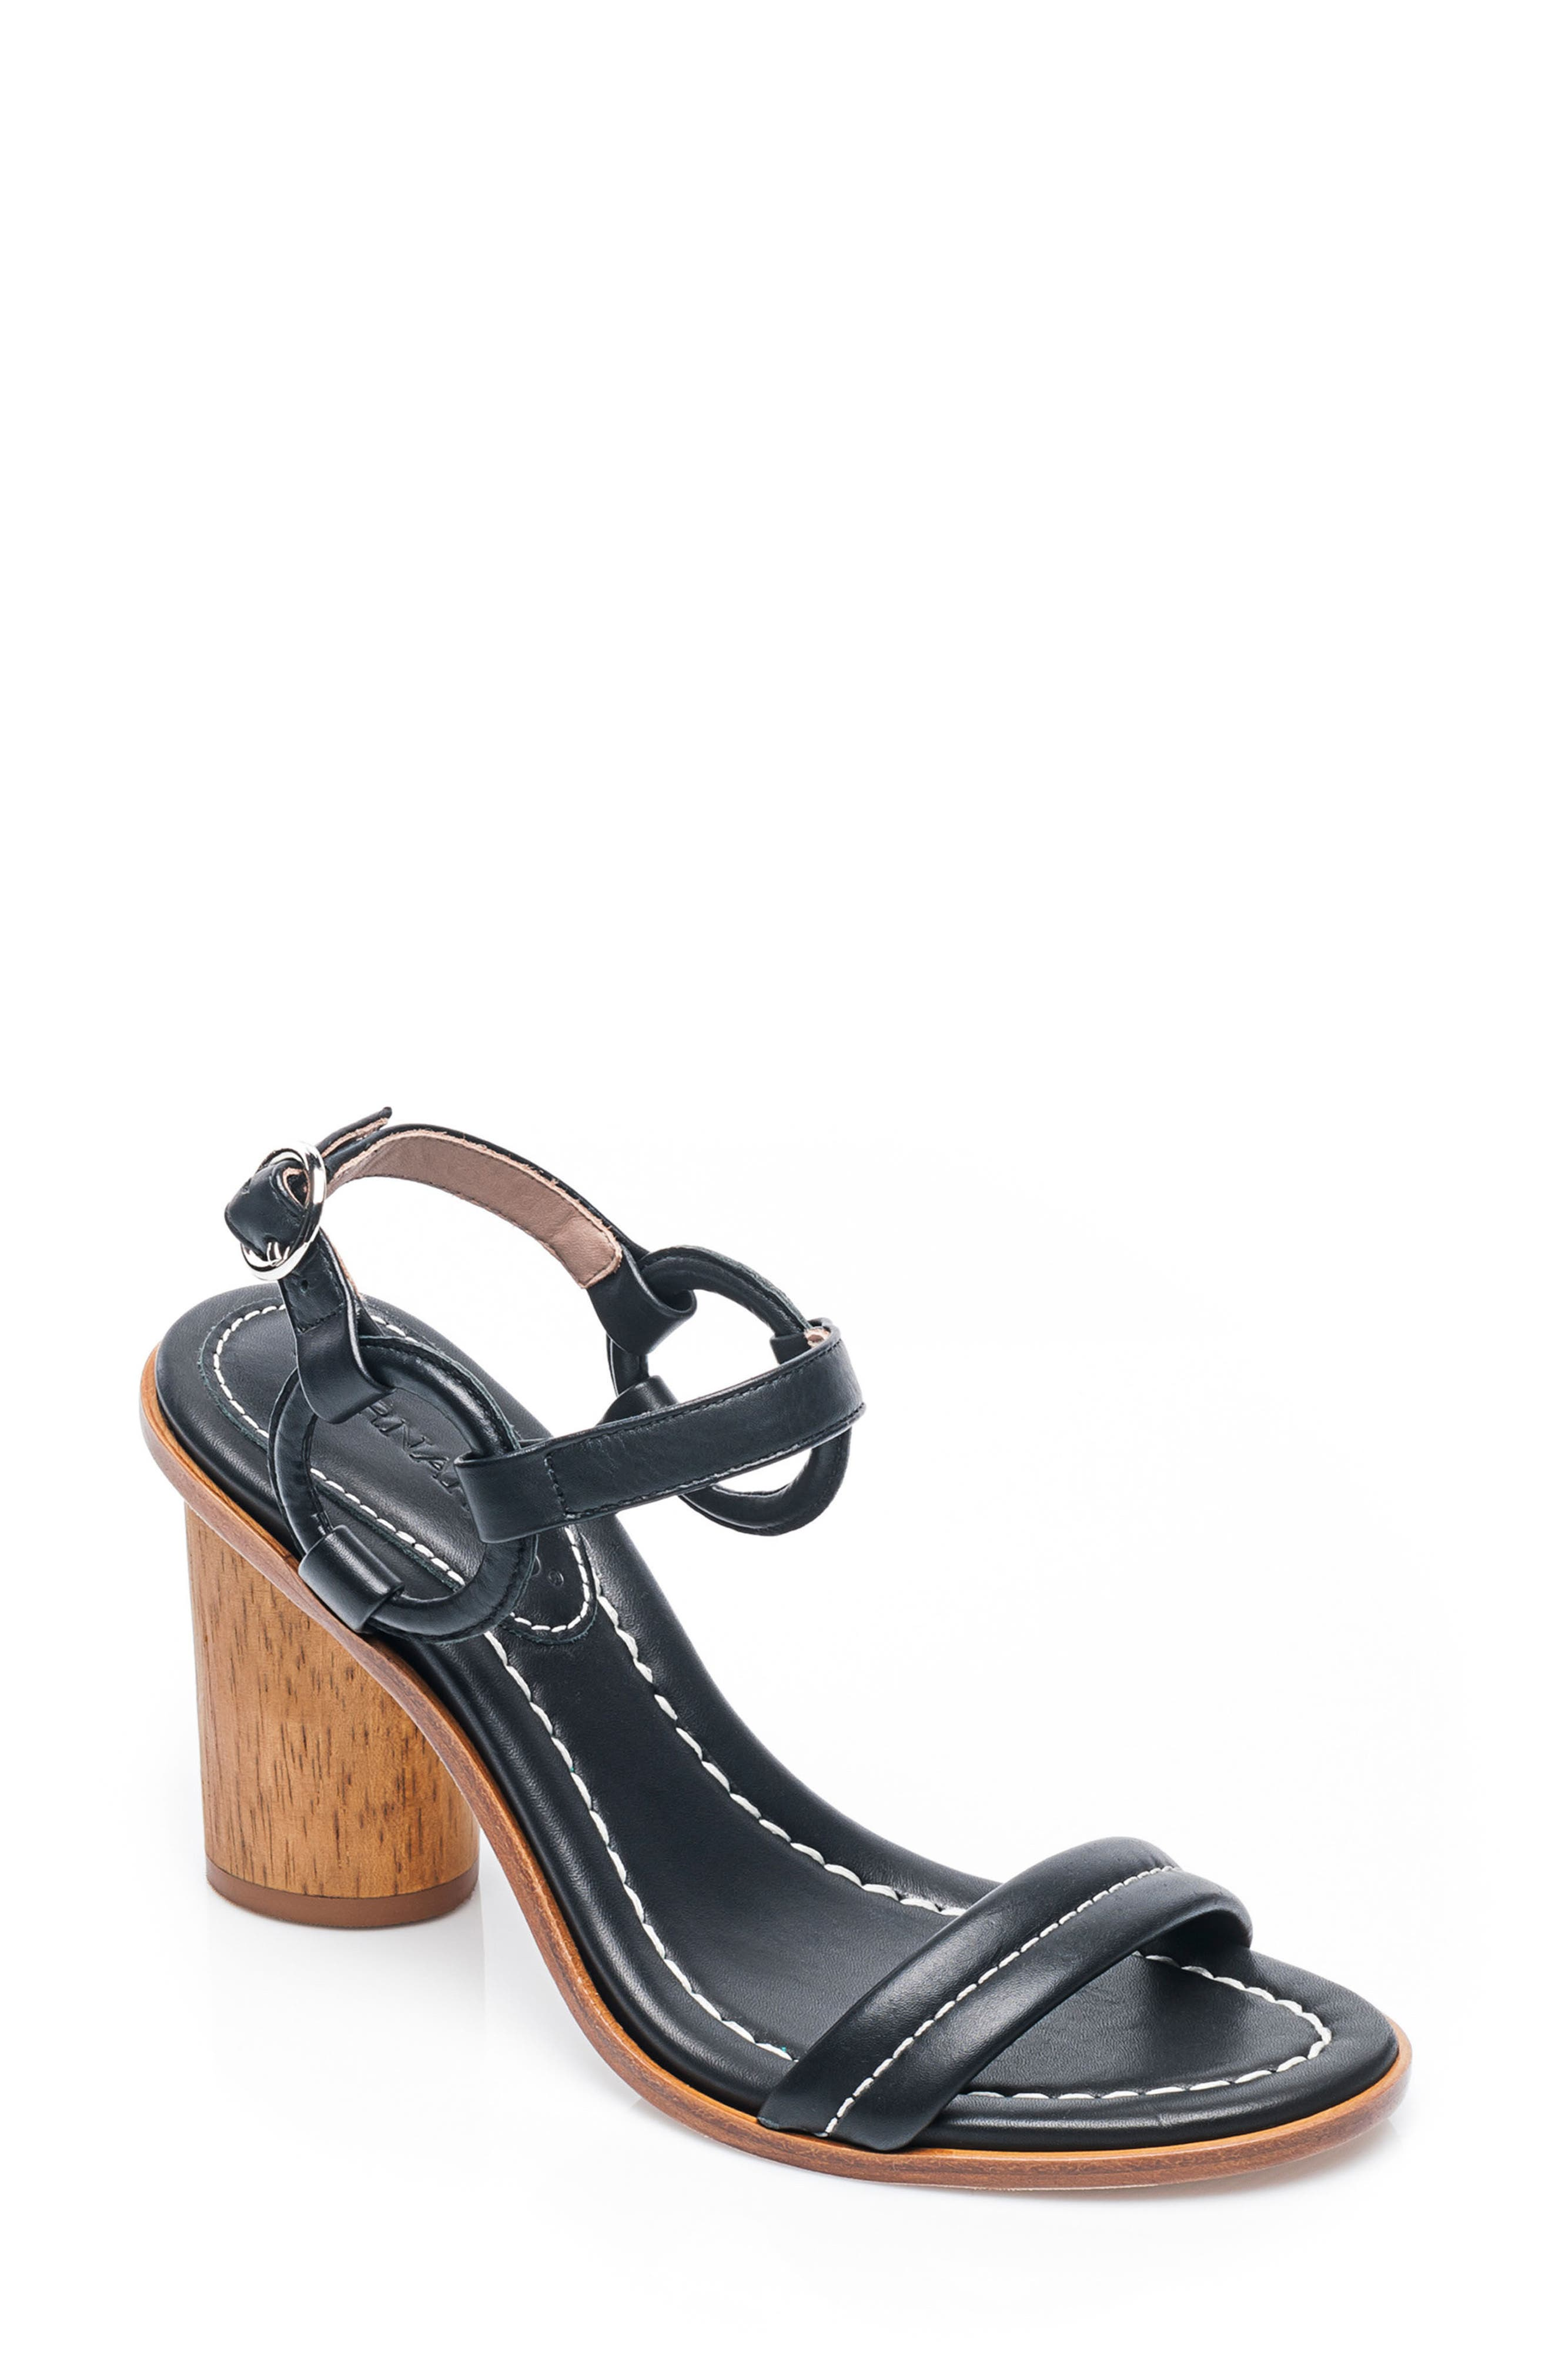 Bernardo Harlow Ankle Strap Sandal,                         Main,                         color, BLACK LEATHER